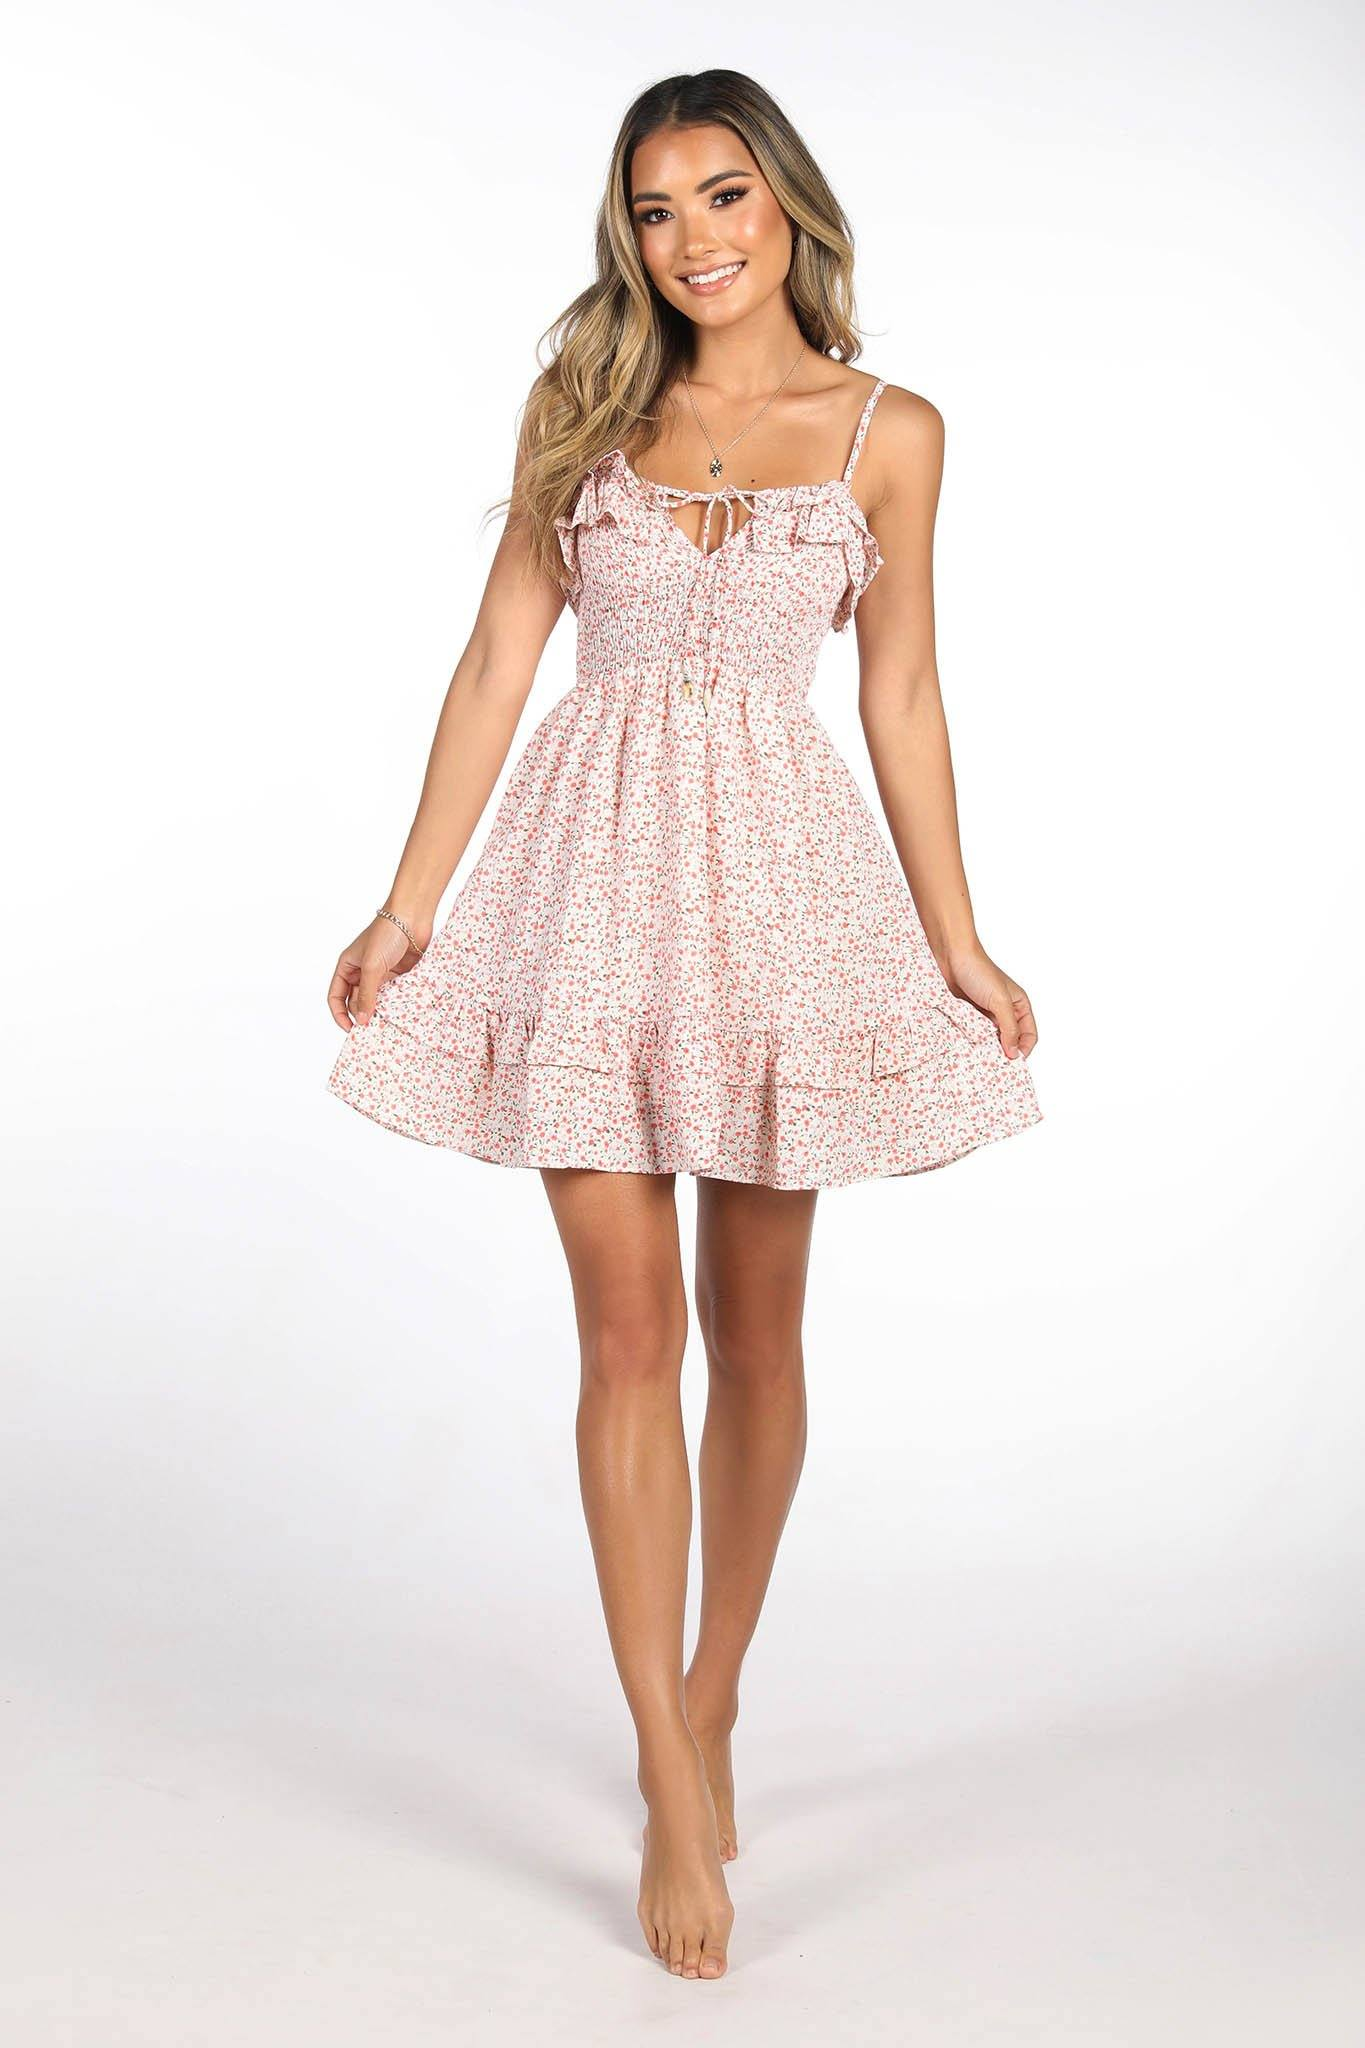 Rose Floral Print Mini Summer Dress with Frilled Hemline and Self Tie Strings at Bust